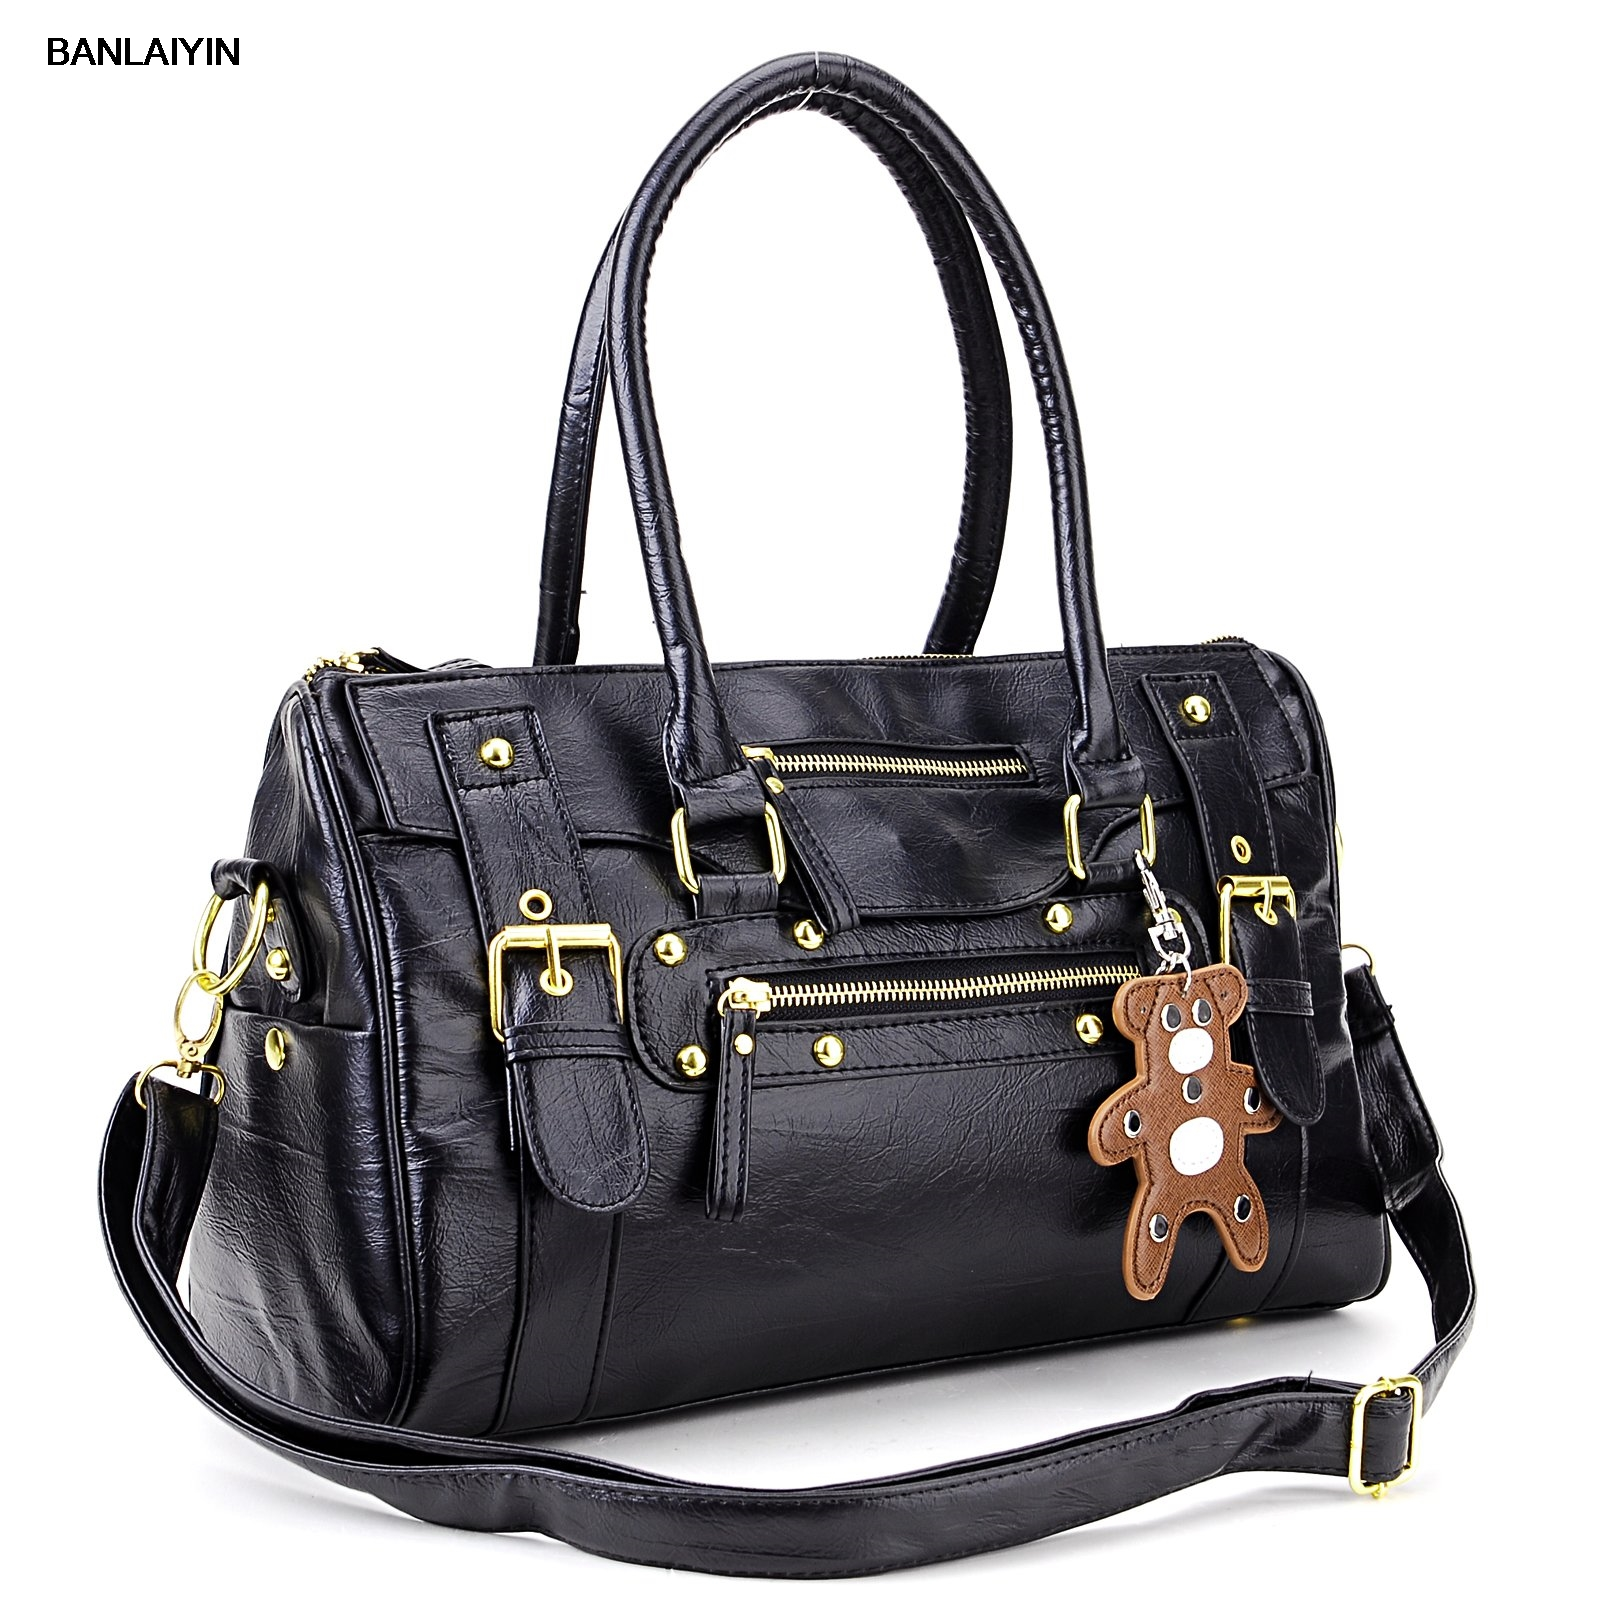 US $27.96 23% OFF|AUAU Sac A Main Porte Main Noir Pour Femmes Cuir PU En Rayure Rocher Ave Un Petit Ours in Shoulder Bags from Luggage & Bags on